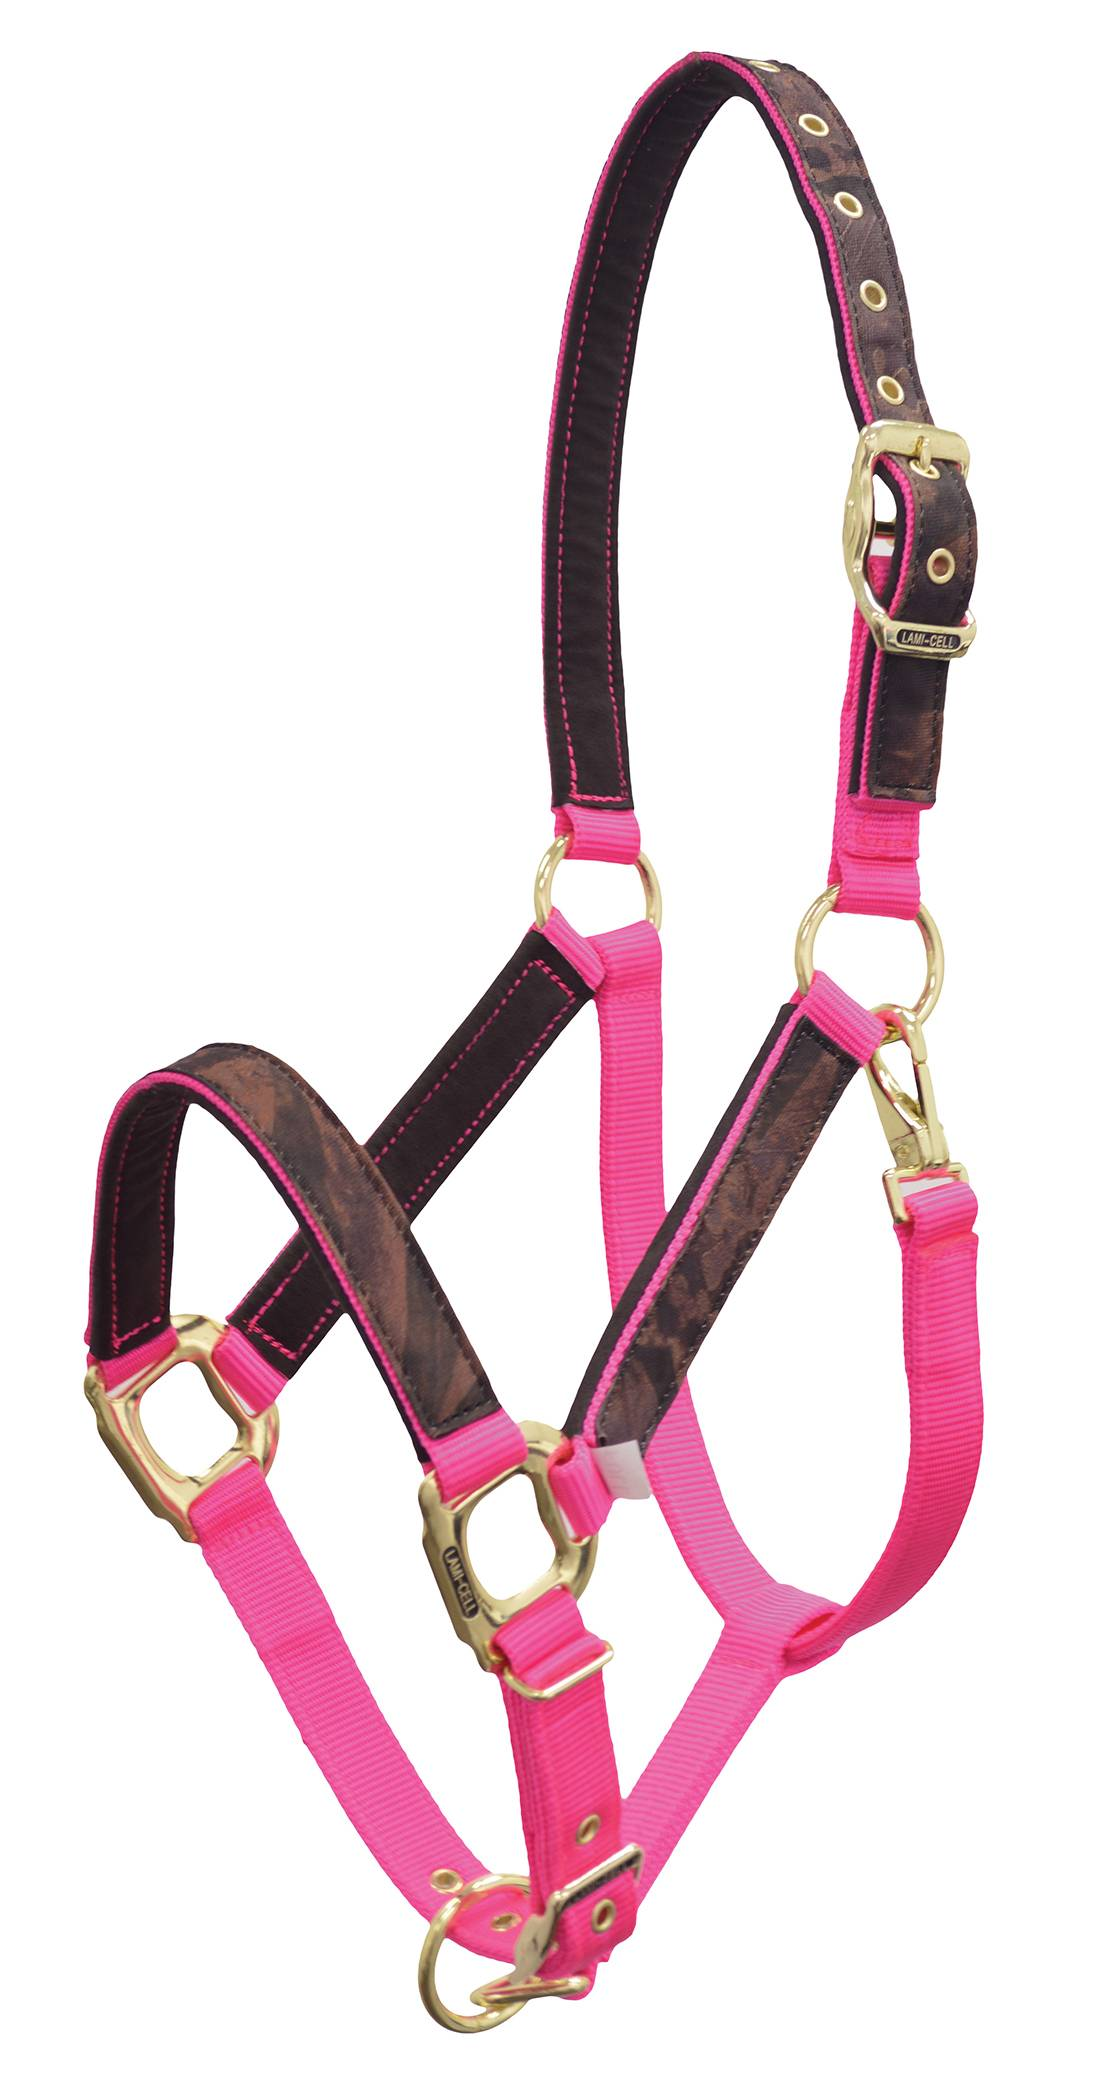 Lami-Cell Wilderness Halter